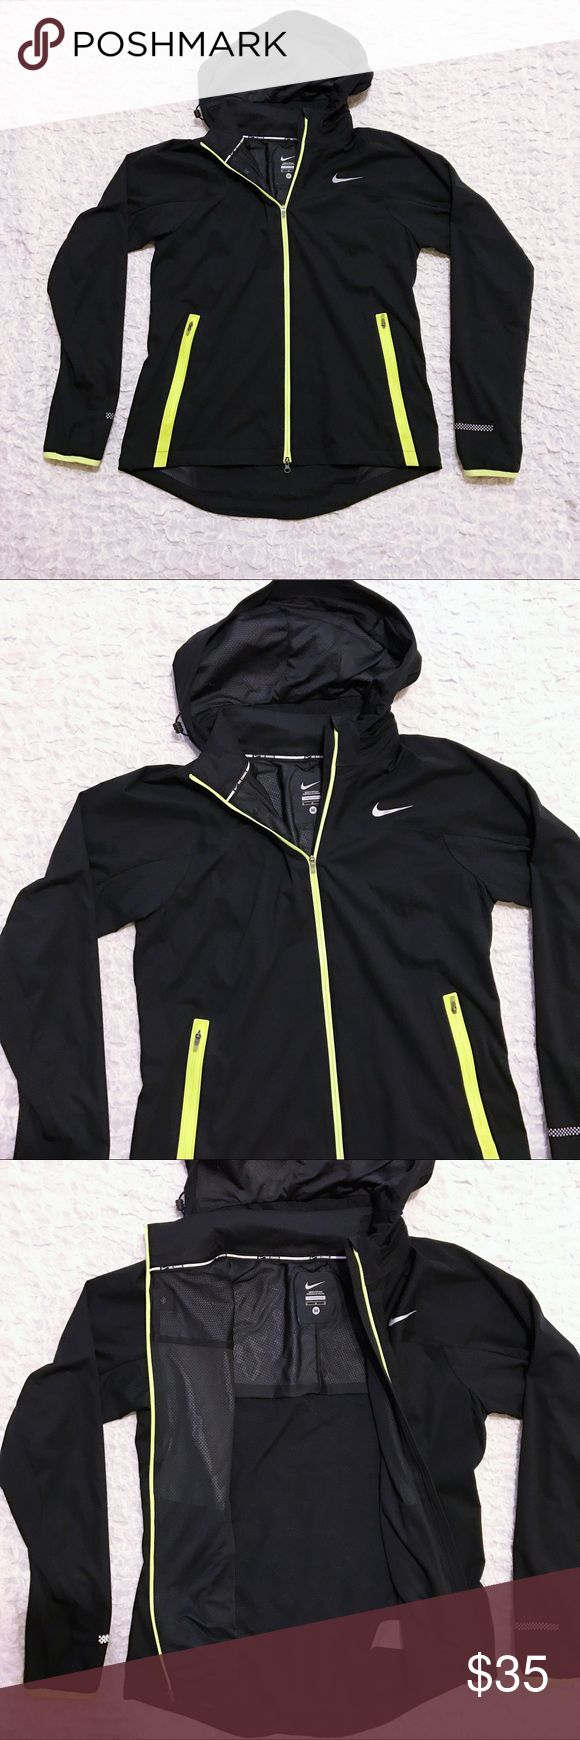 Nike Running Jacket Women's Nike running jacket. Size medium. Has detachable hood. Black with lime green trim. Light and breathable. Excellent condition. Nike Jackets & Coats